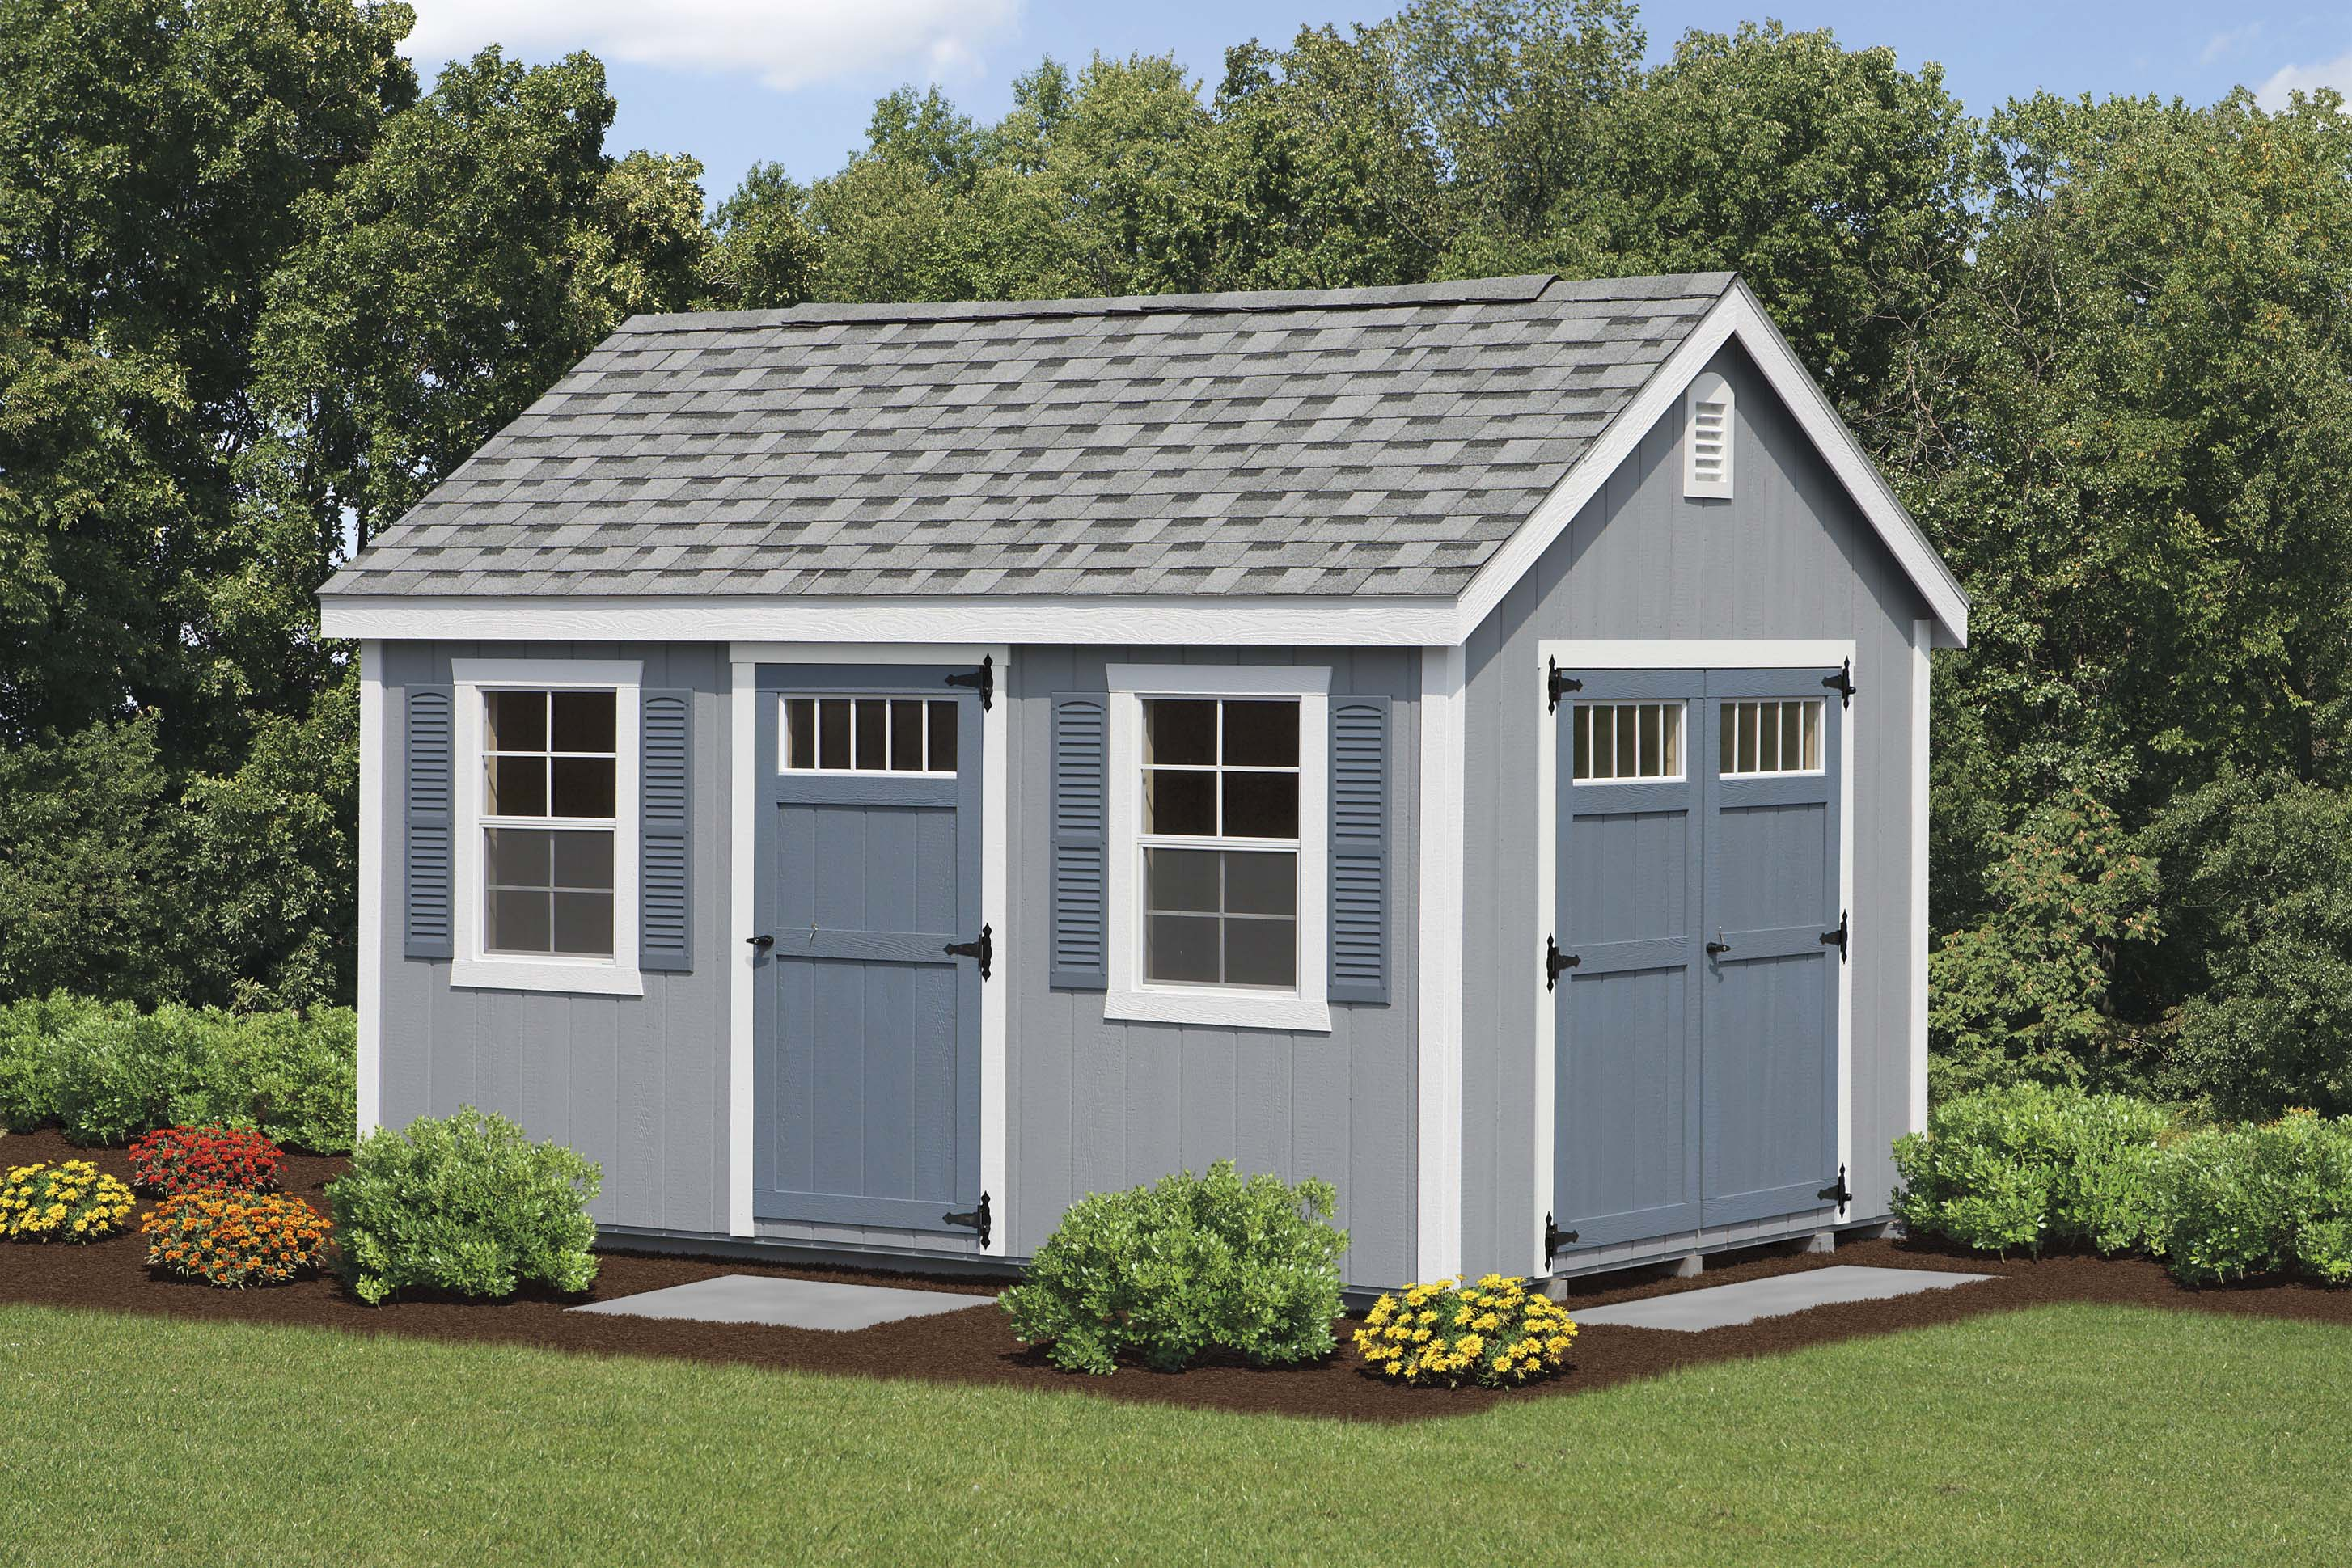 Sheds barns garages pine ridge barns for 10x14 garage door